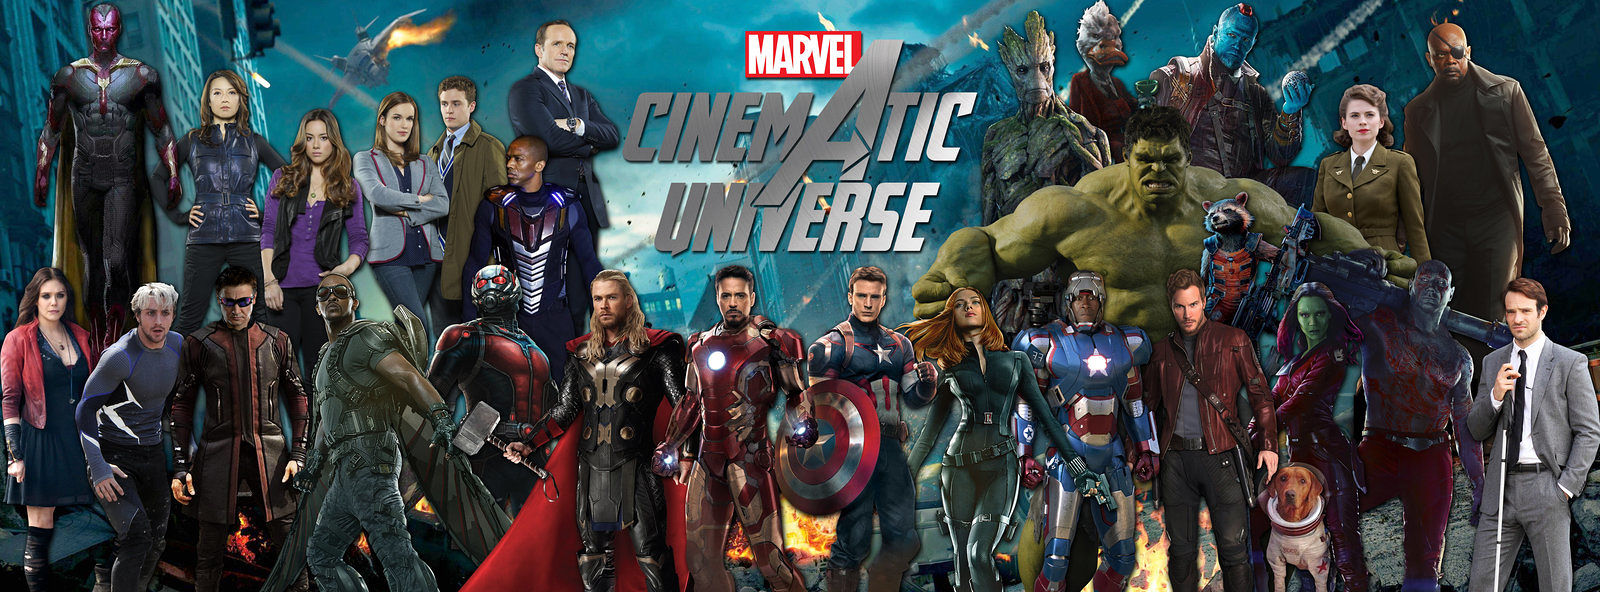 Photo of 8 Movie Mistakes Made by Marvel Studios